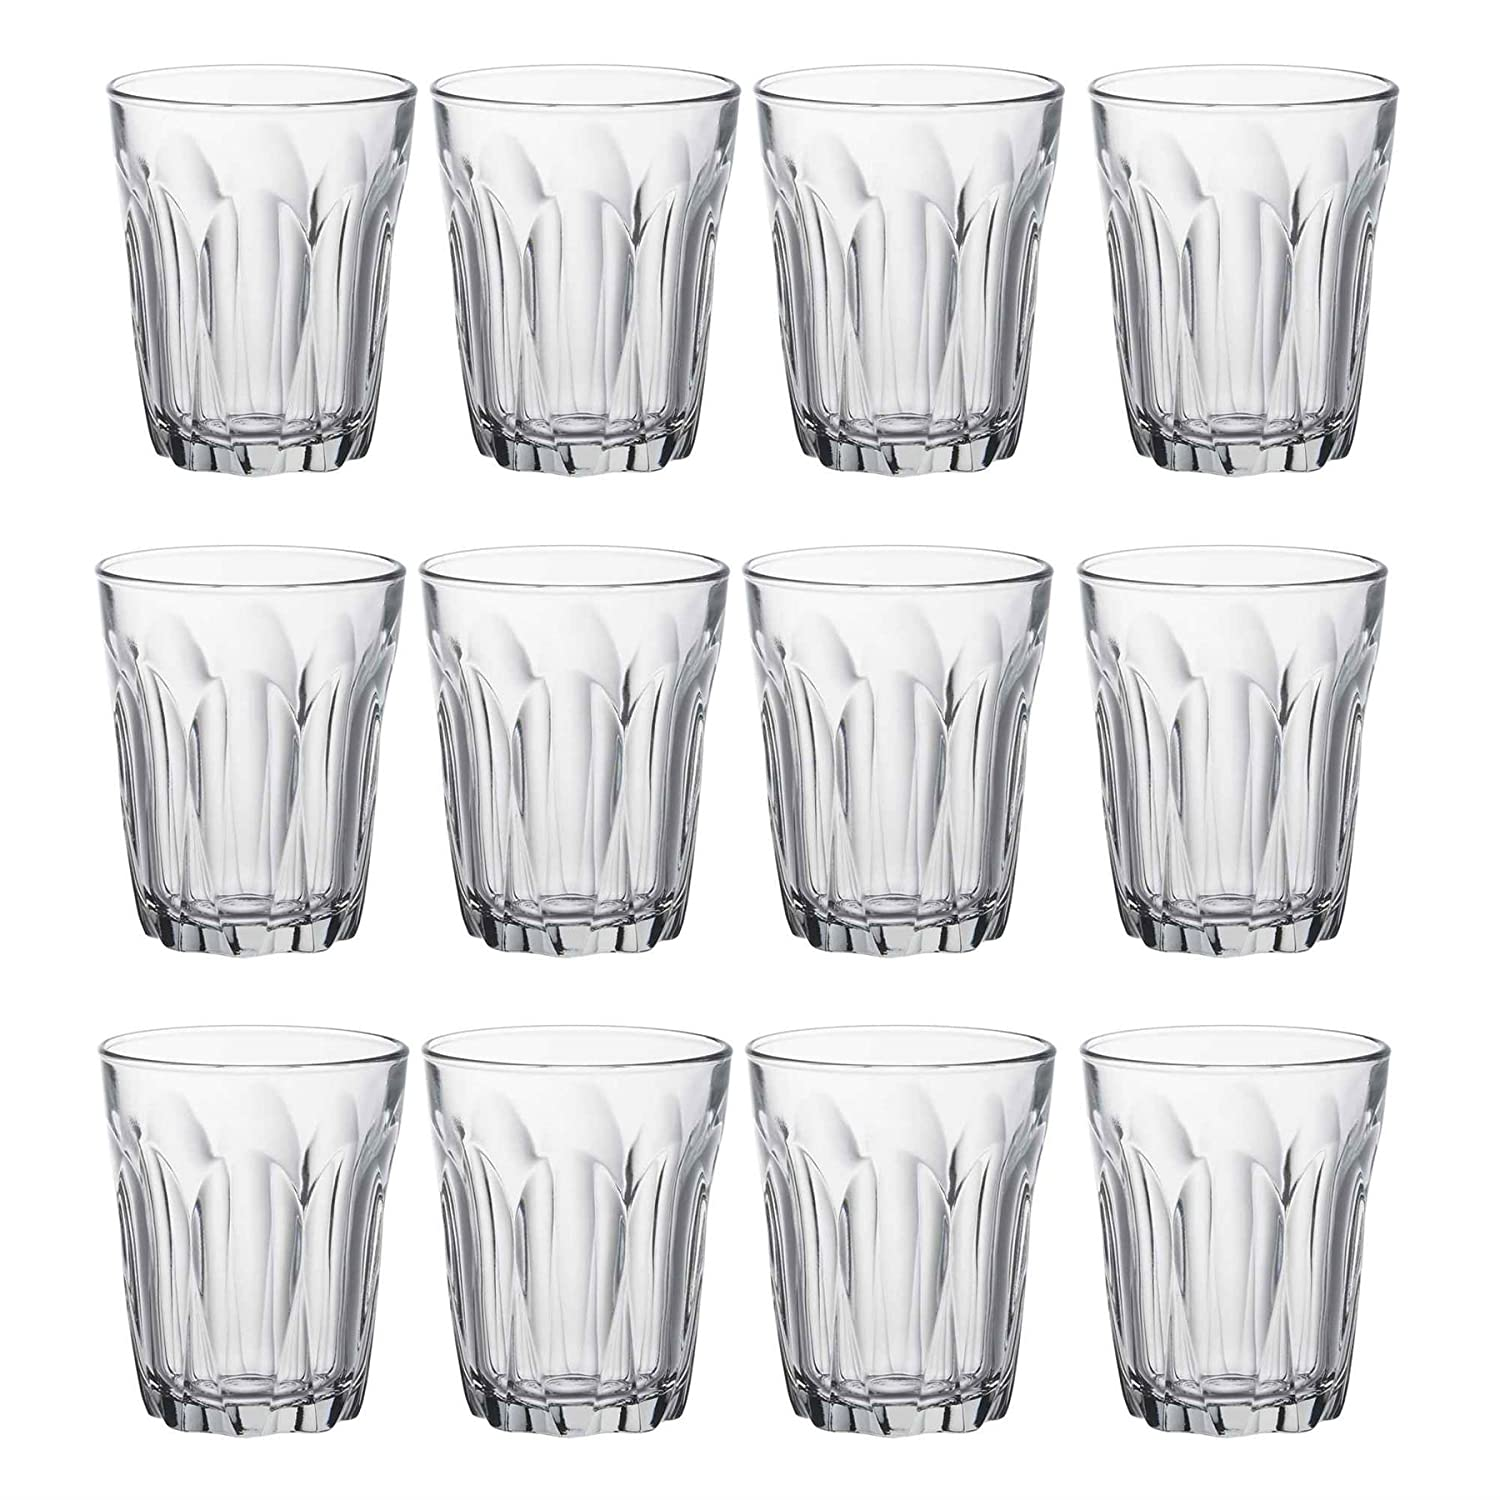 Duralex Provence Water/Juice Traditional Tumbler Glasses - 160ml - Pack of 12